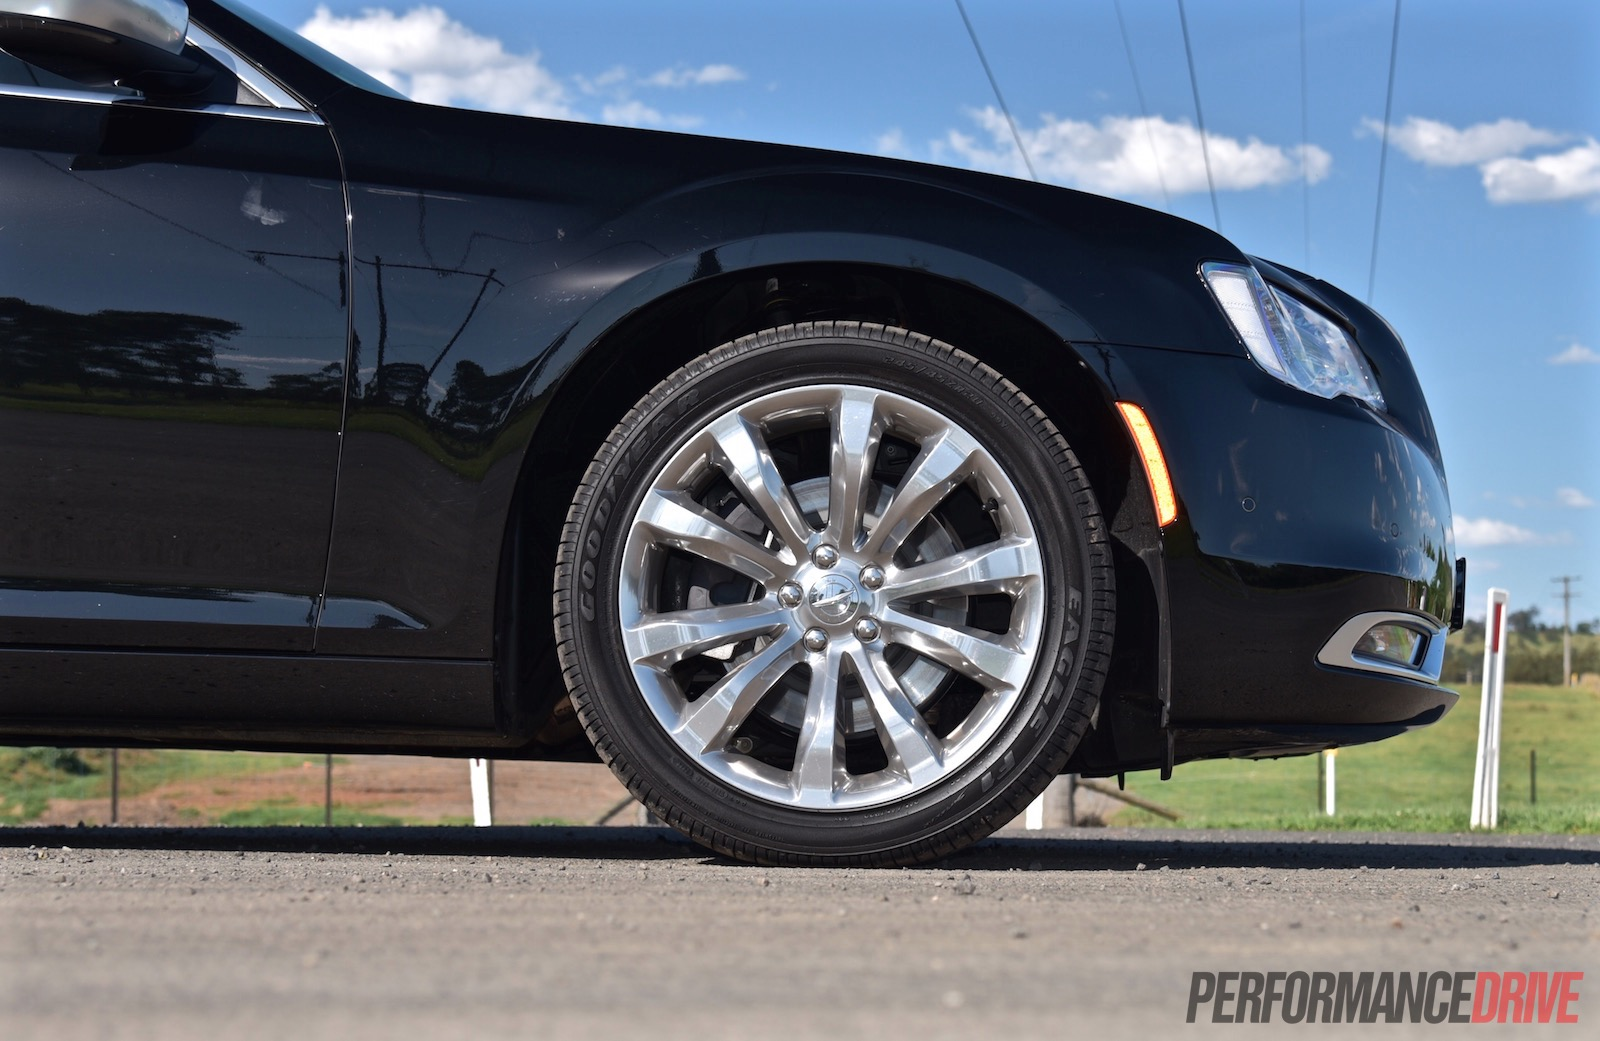 rwd and sale first review rims reviews original chrysler car photo awd for driver drive s v a